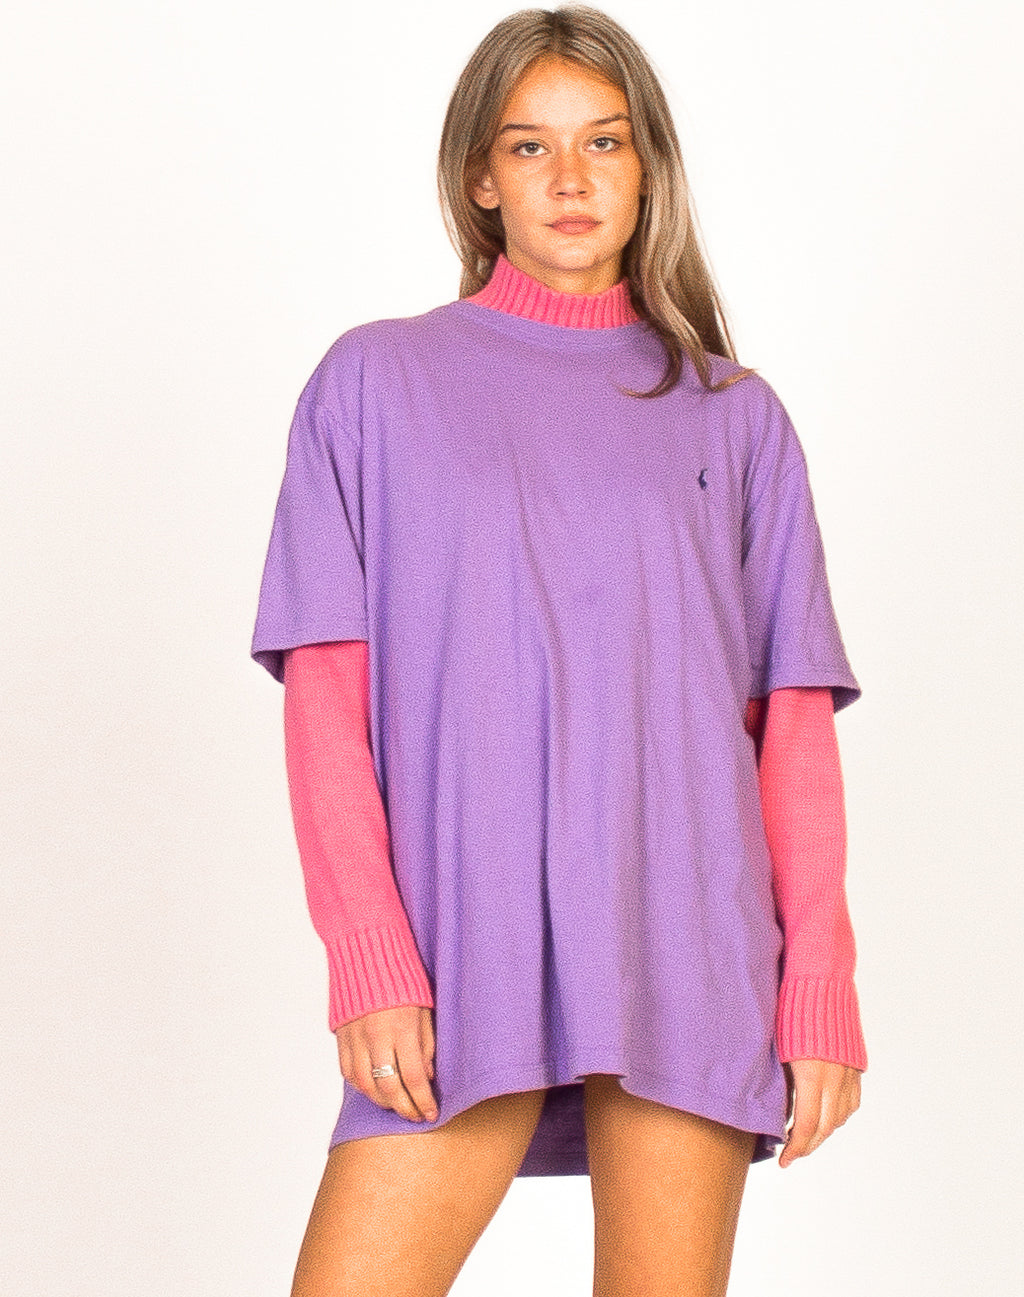 RALPH LAUREN PURPLE TEE